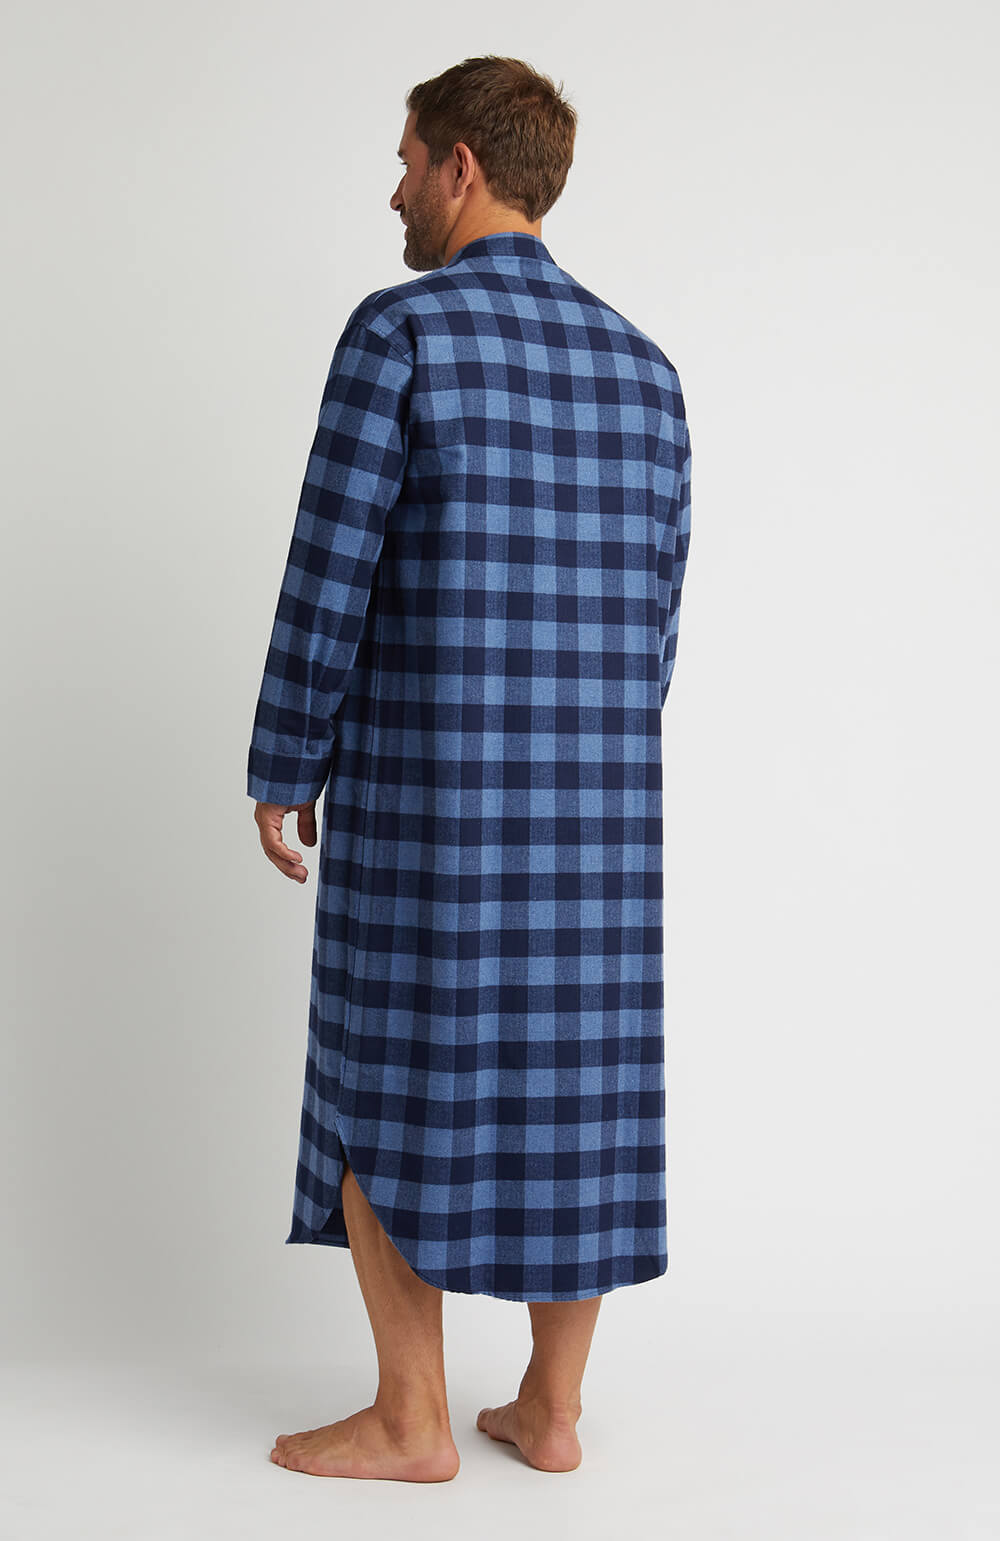 Brushed Cotton Grandad Nightshirt (jmnl) - Howard | Bonsoir of London